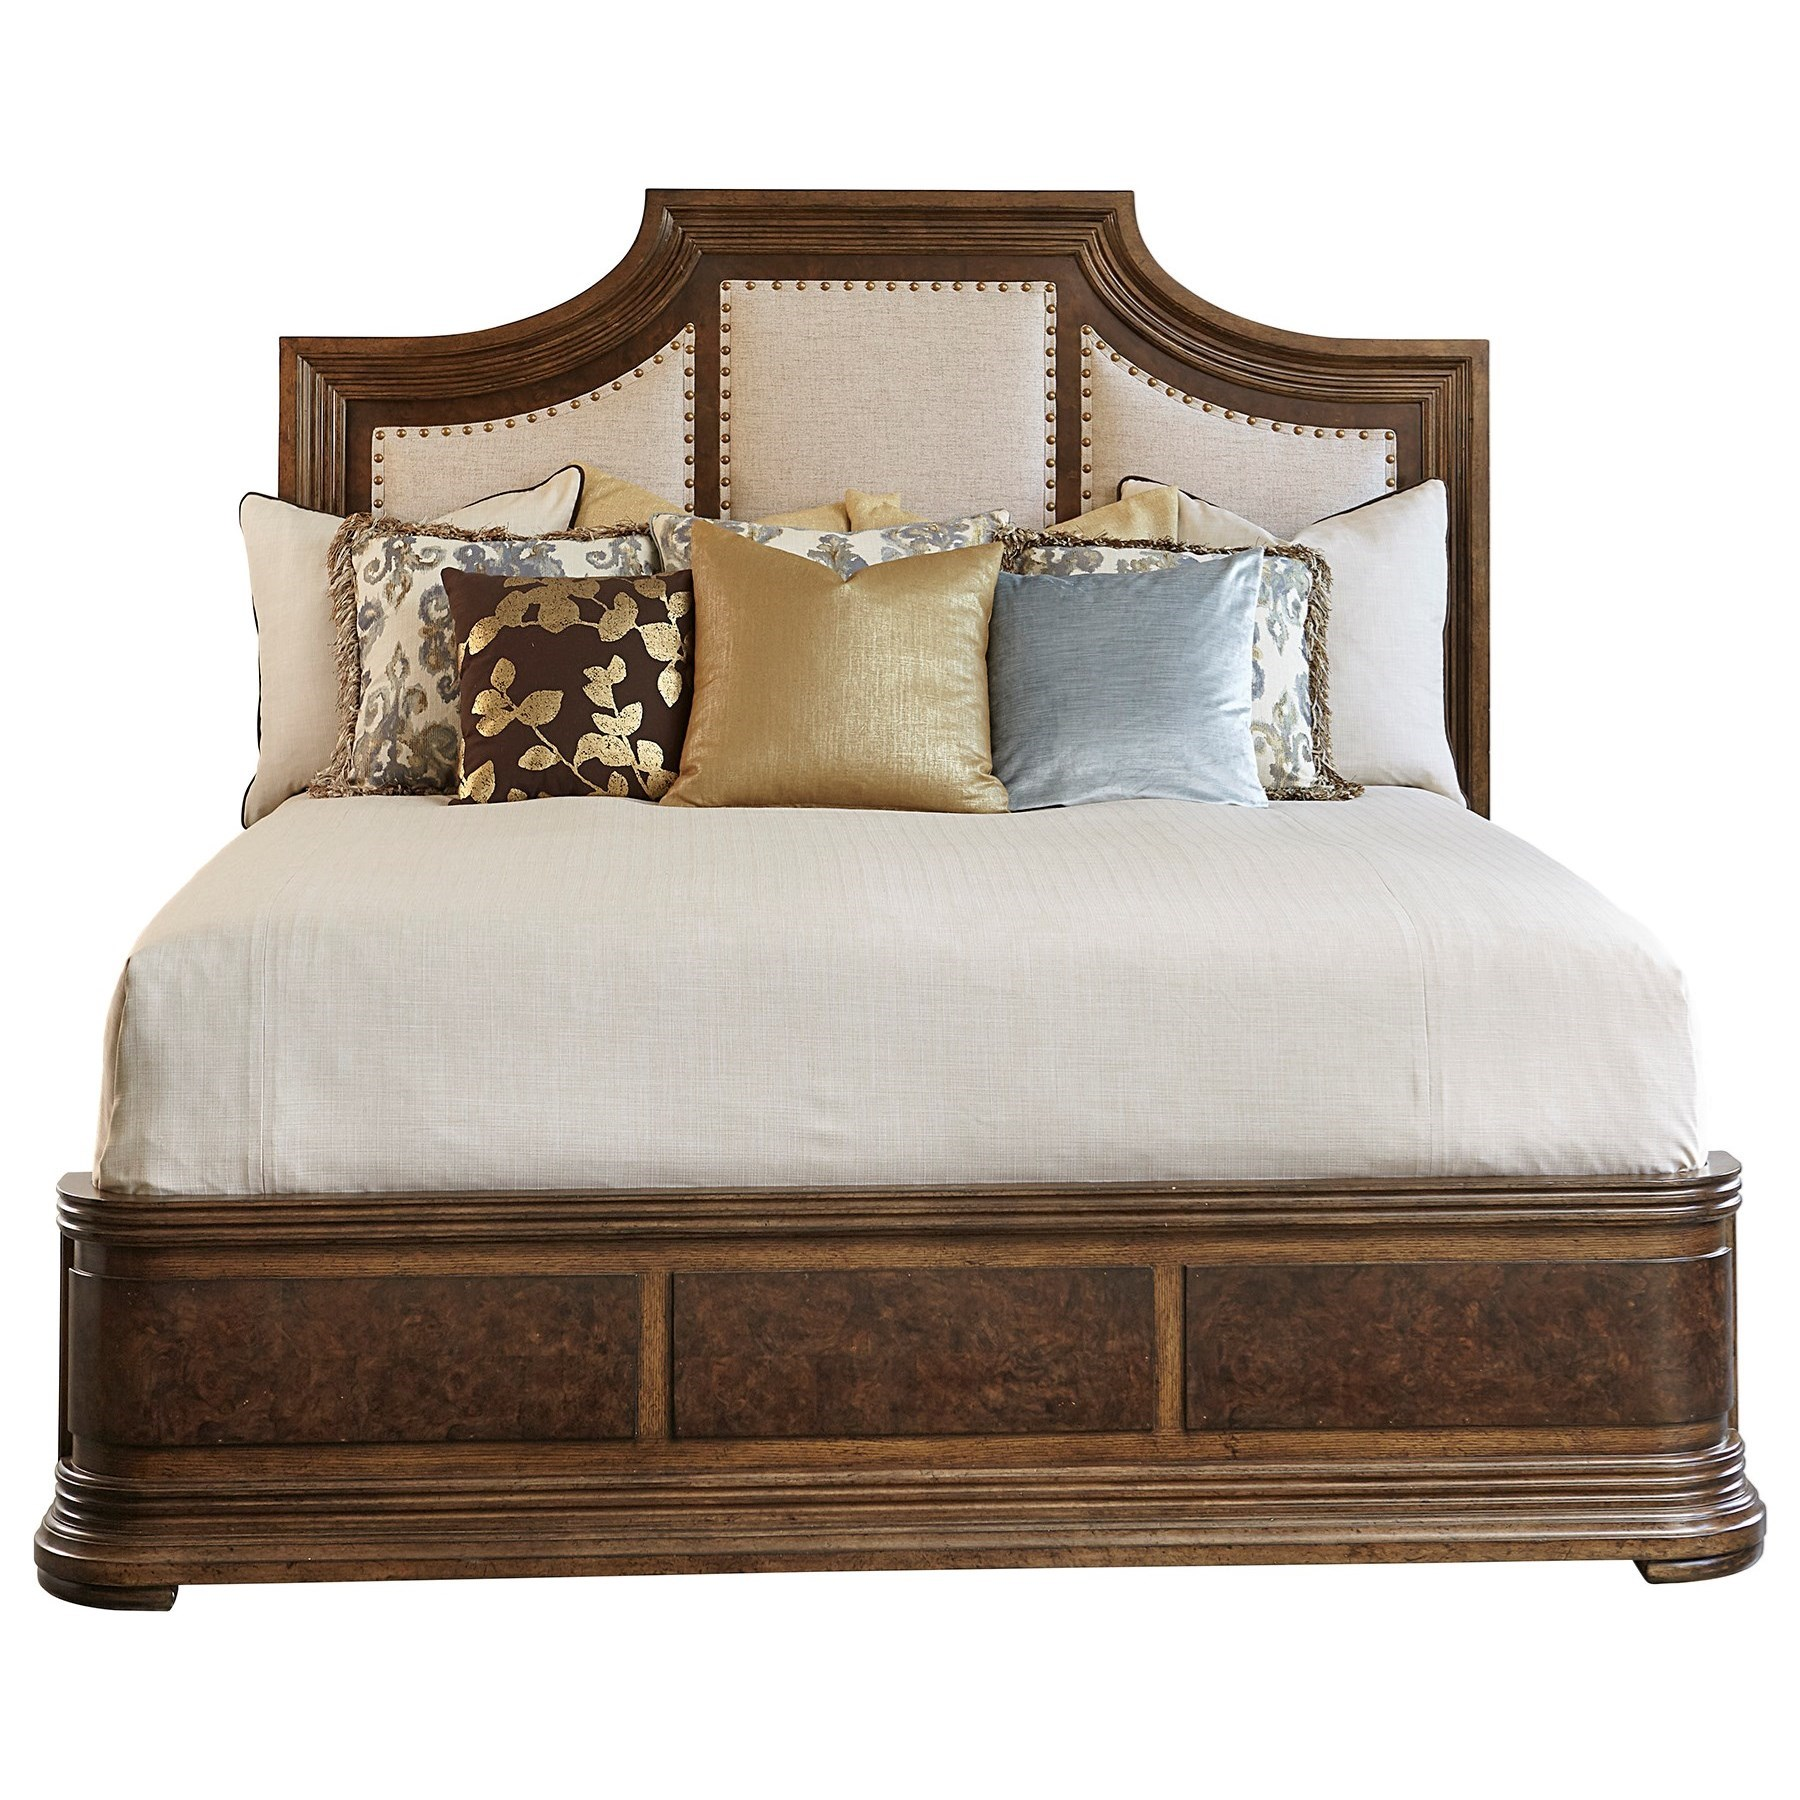 Kingsport  Queen Upholstered Panel Bed  by A.R.T. Furniture Inc at Michael Alan Furniture & Design